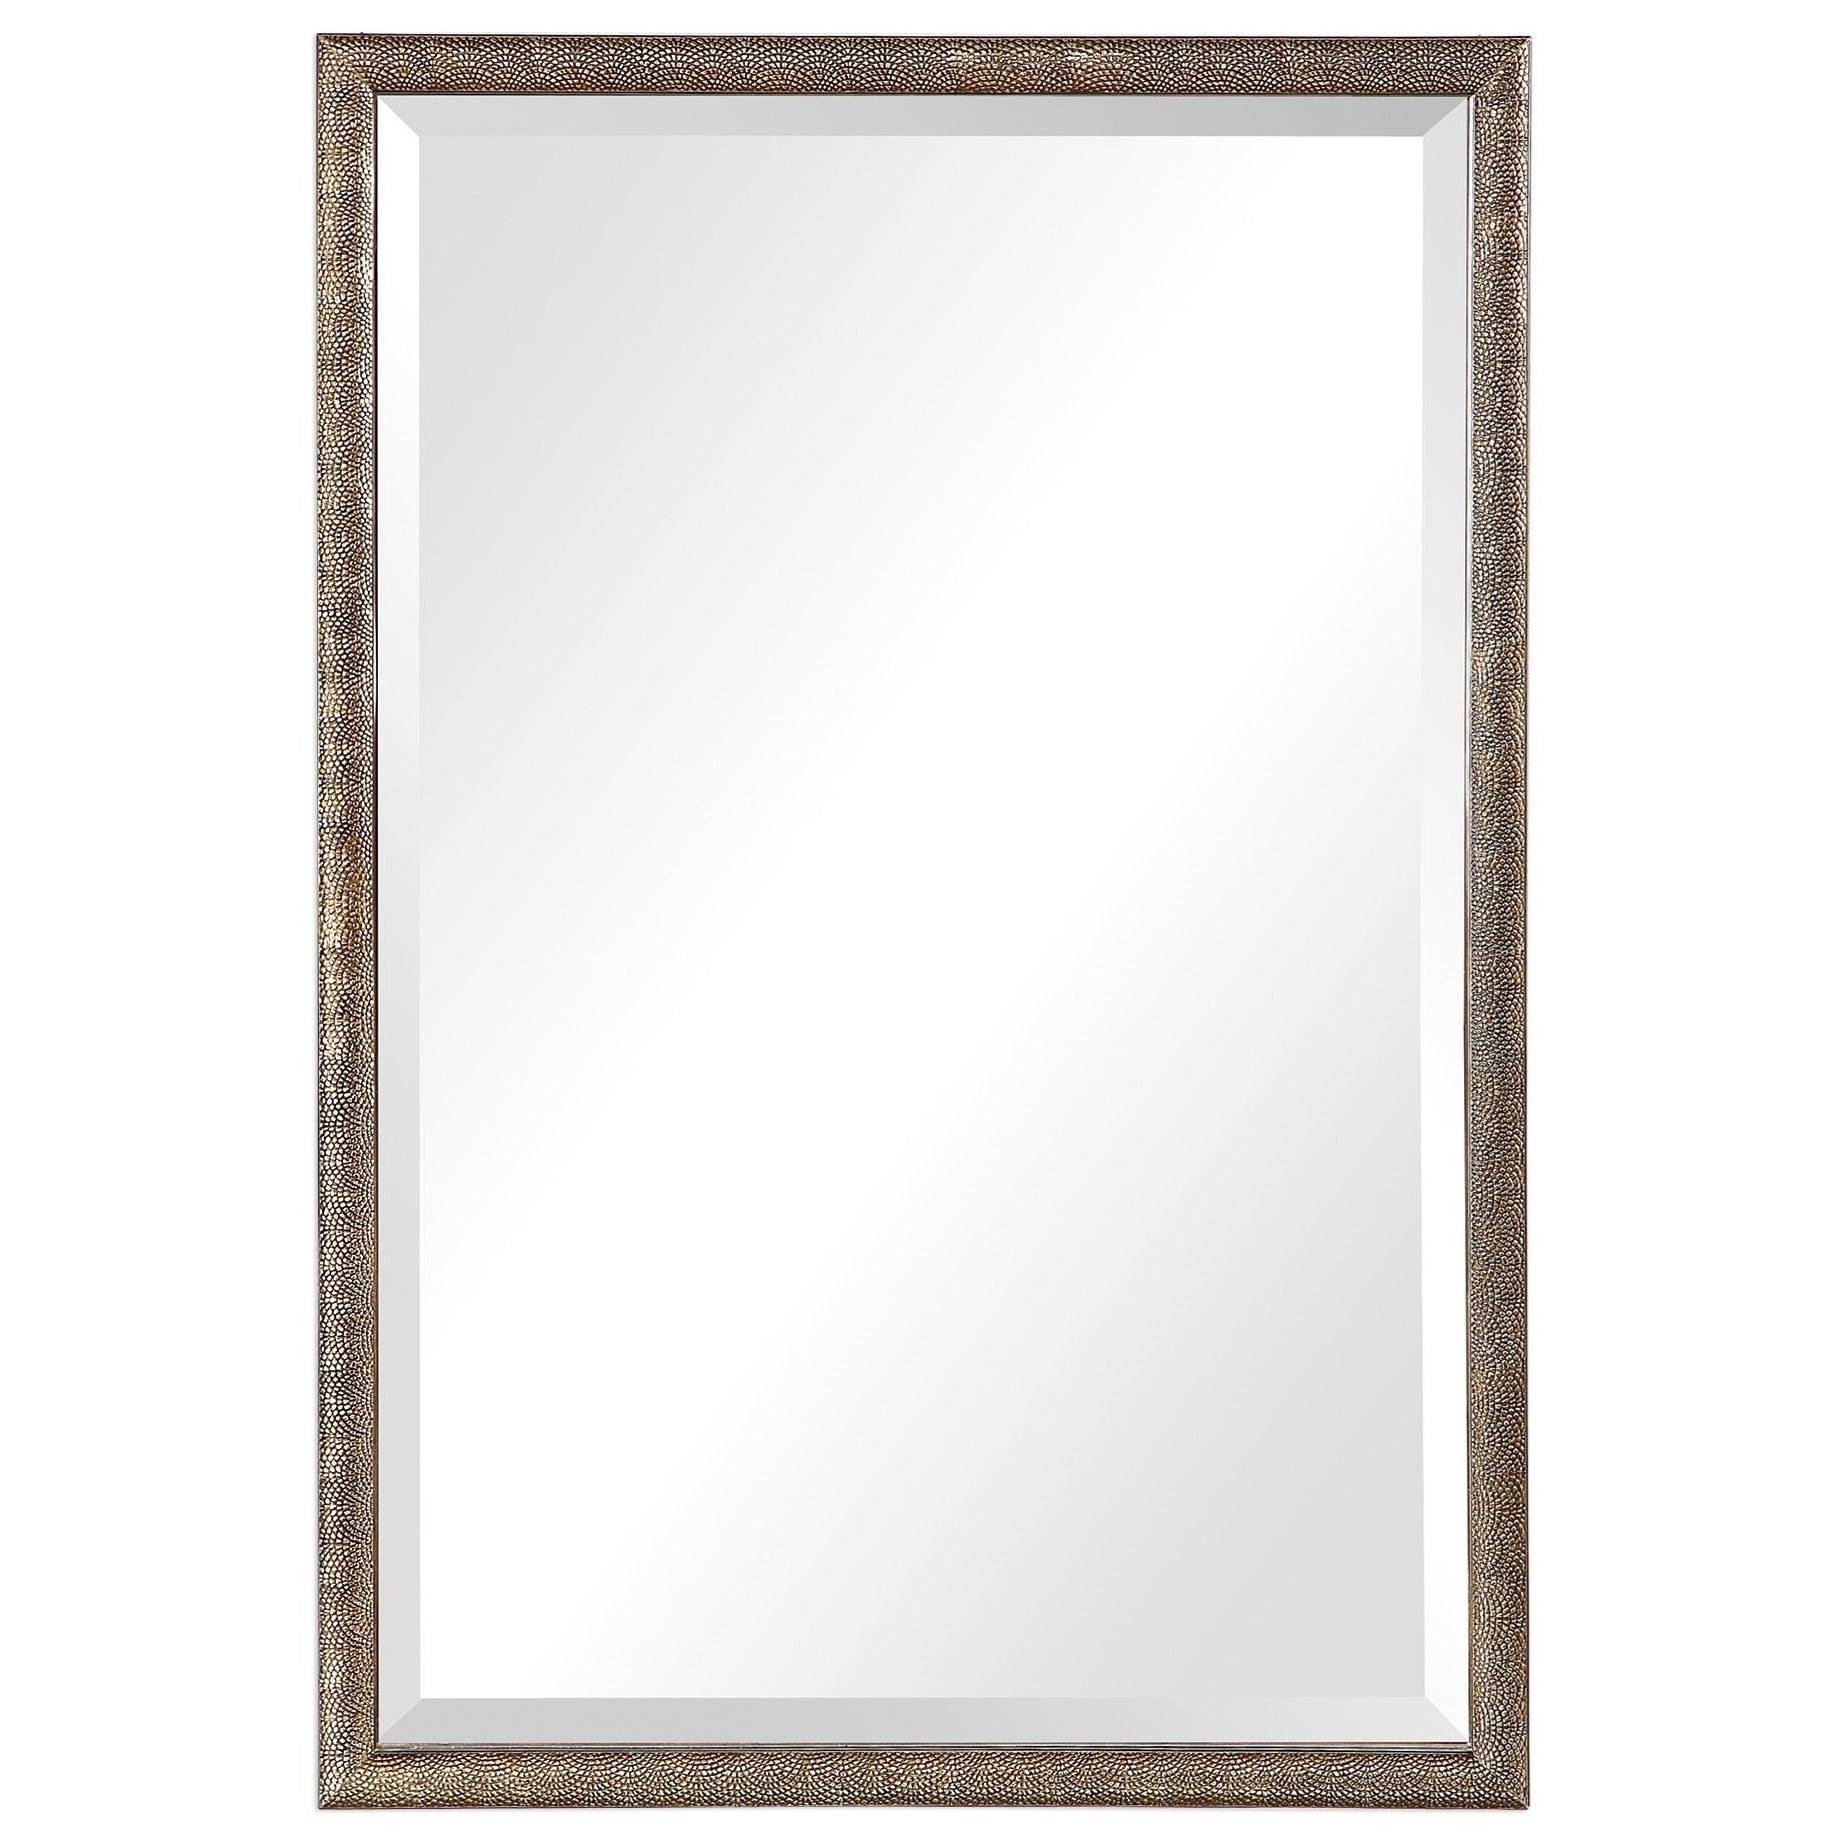 Mirrors Barree Antiqued Champagne Mirror by Uttermost at Pedigo Furniture